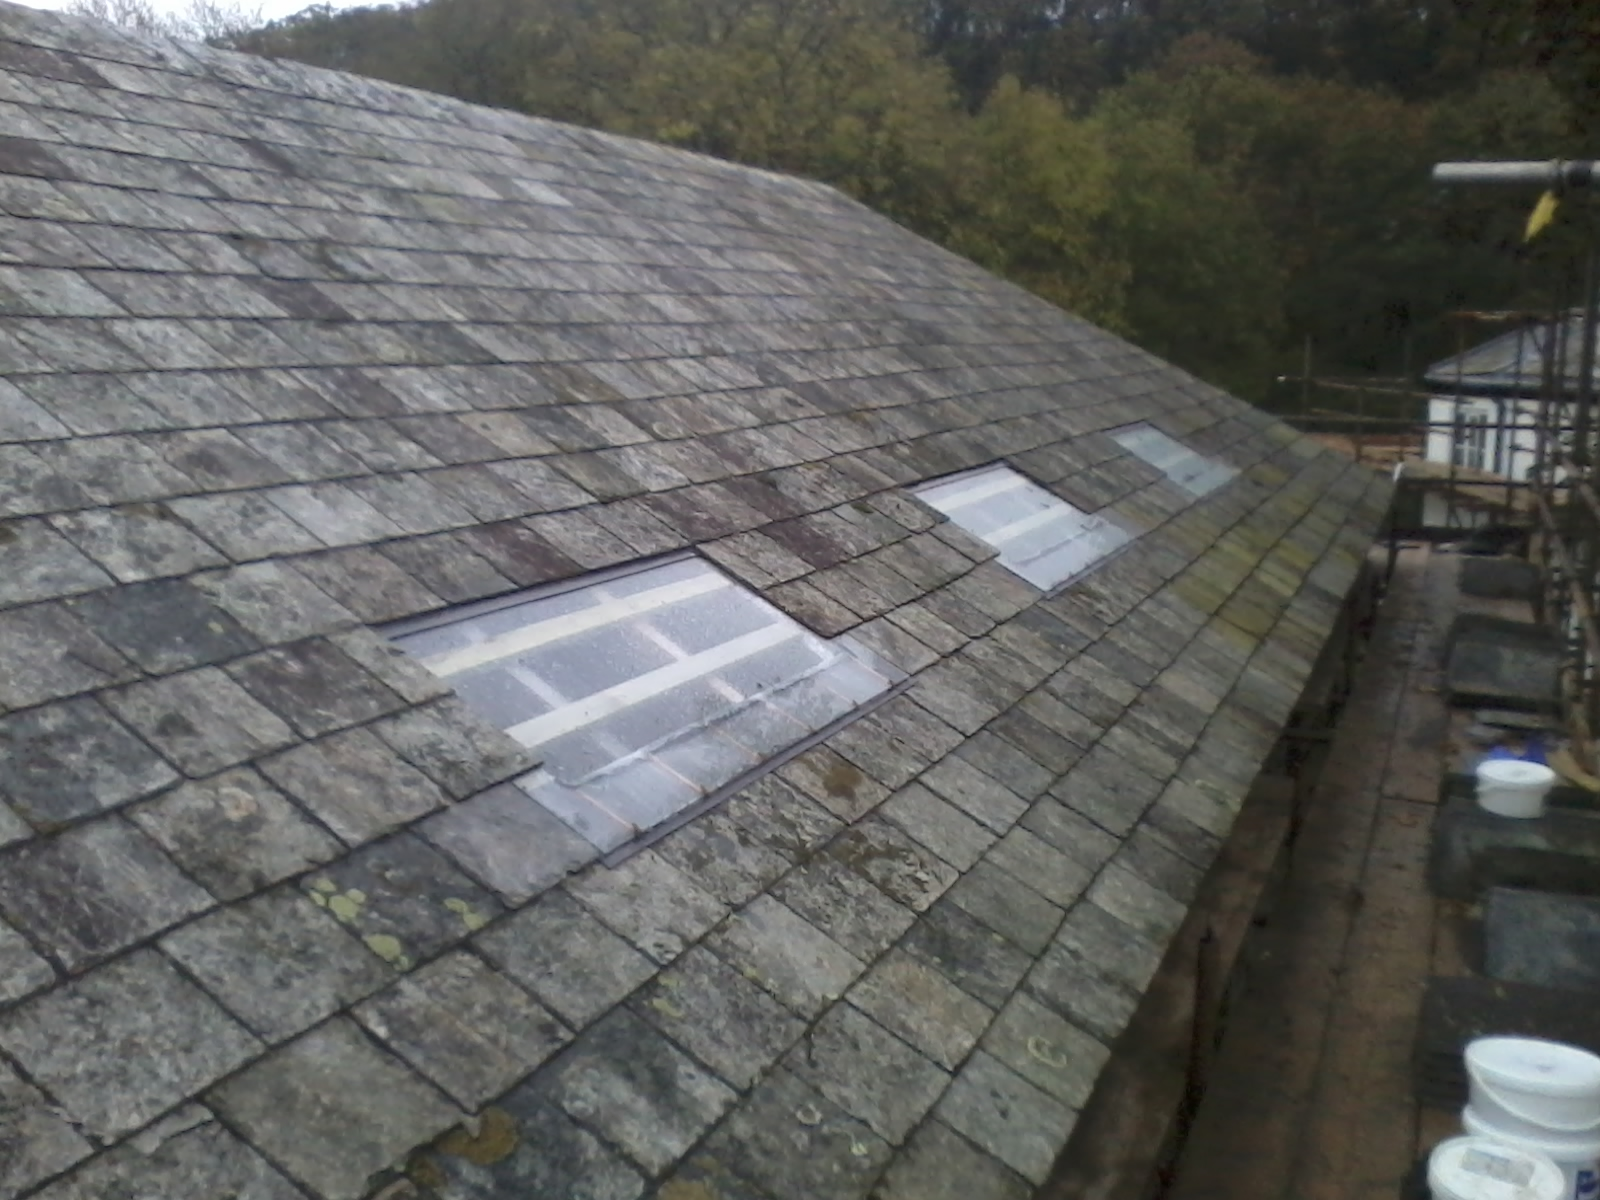 Find Below A Re Roofing Project We Undertook In Ide Near Exeter. This  Project Compromised Of Striping Off The Existing Defective Roof Covering .